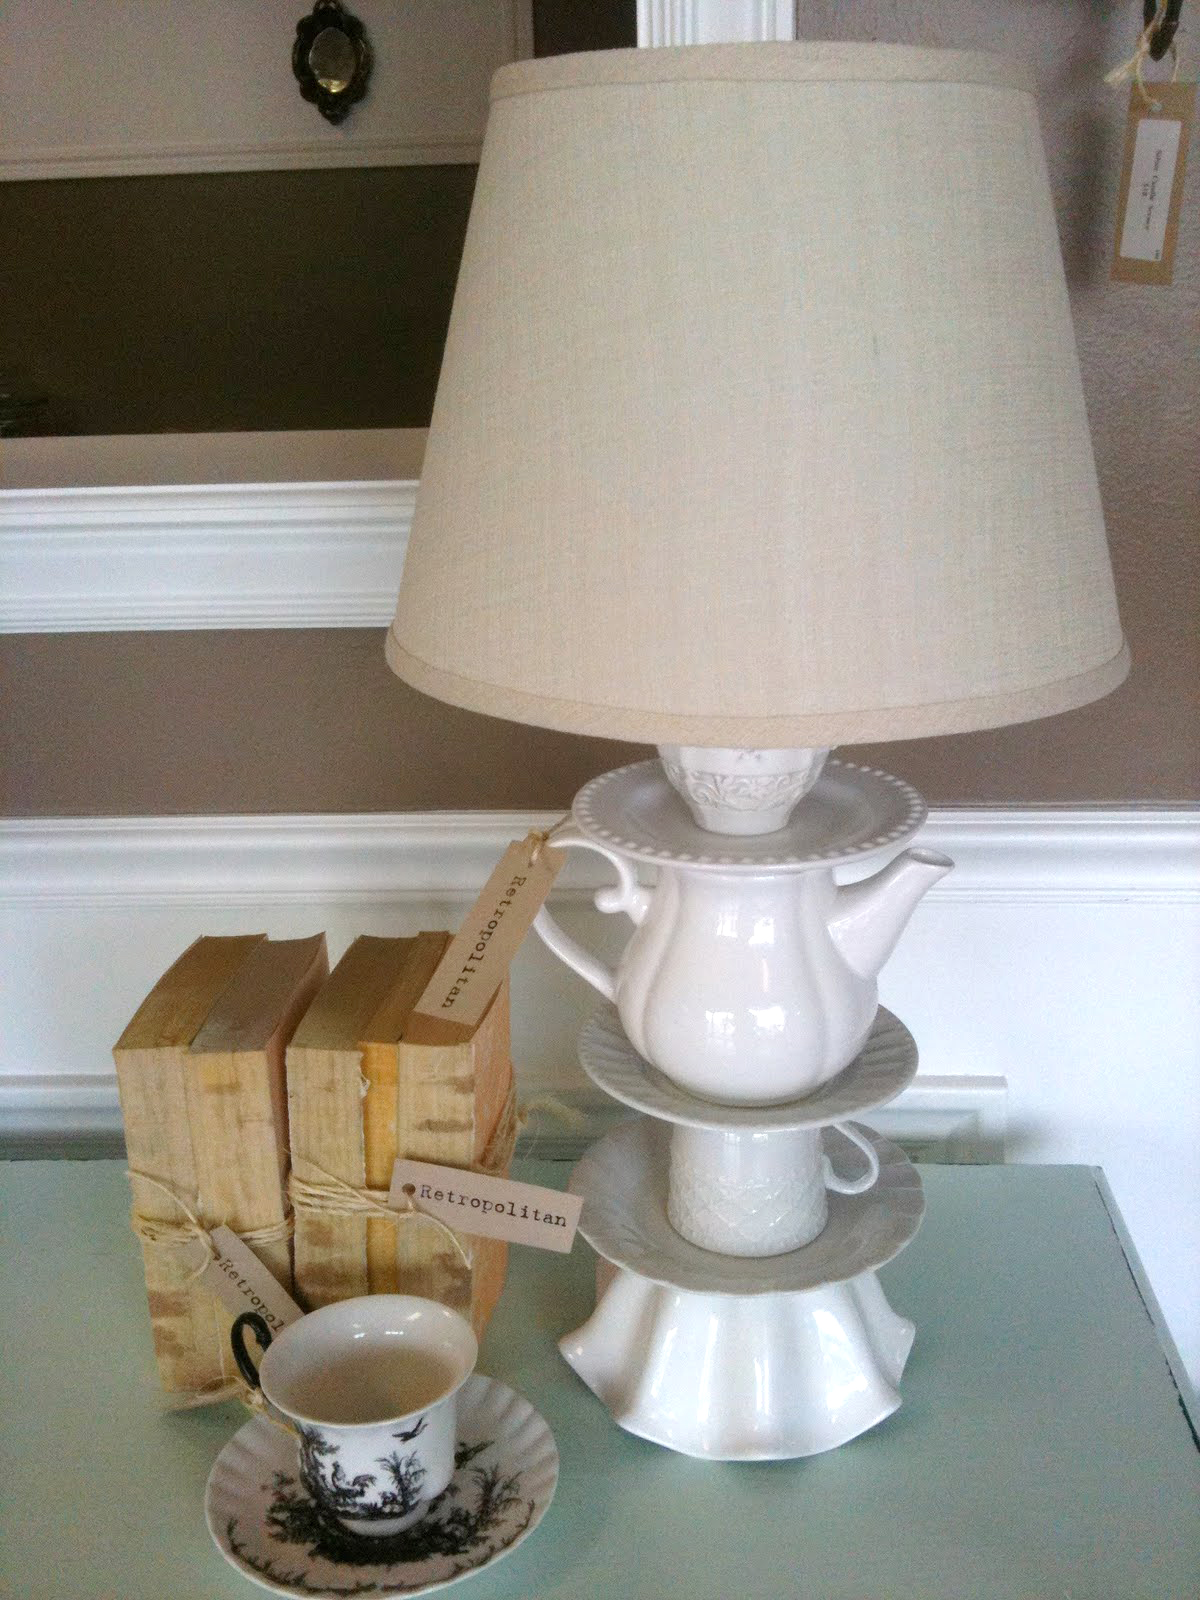 DIY Dish Lamp Tutorial